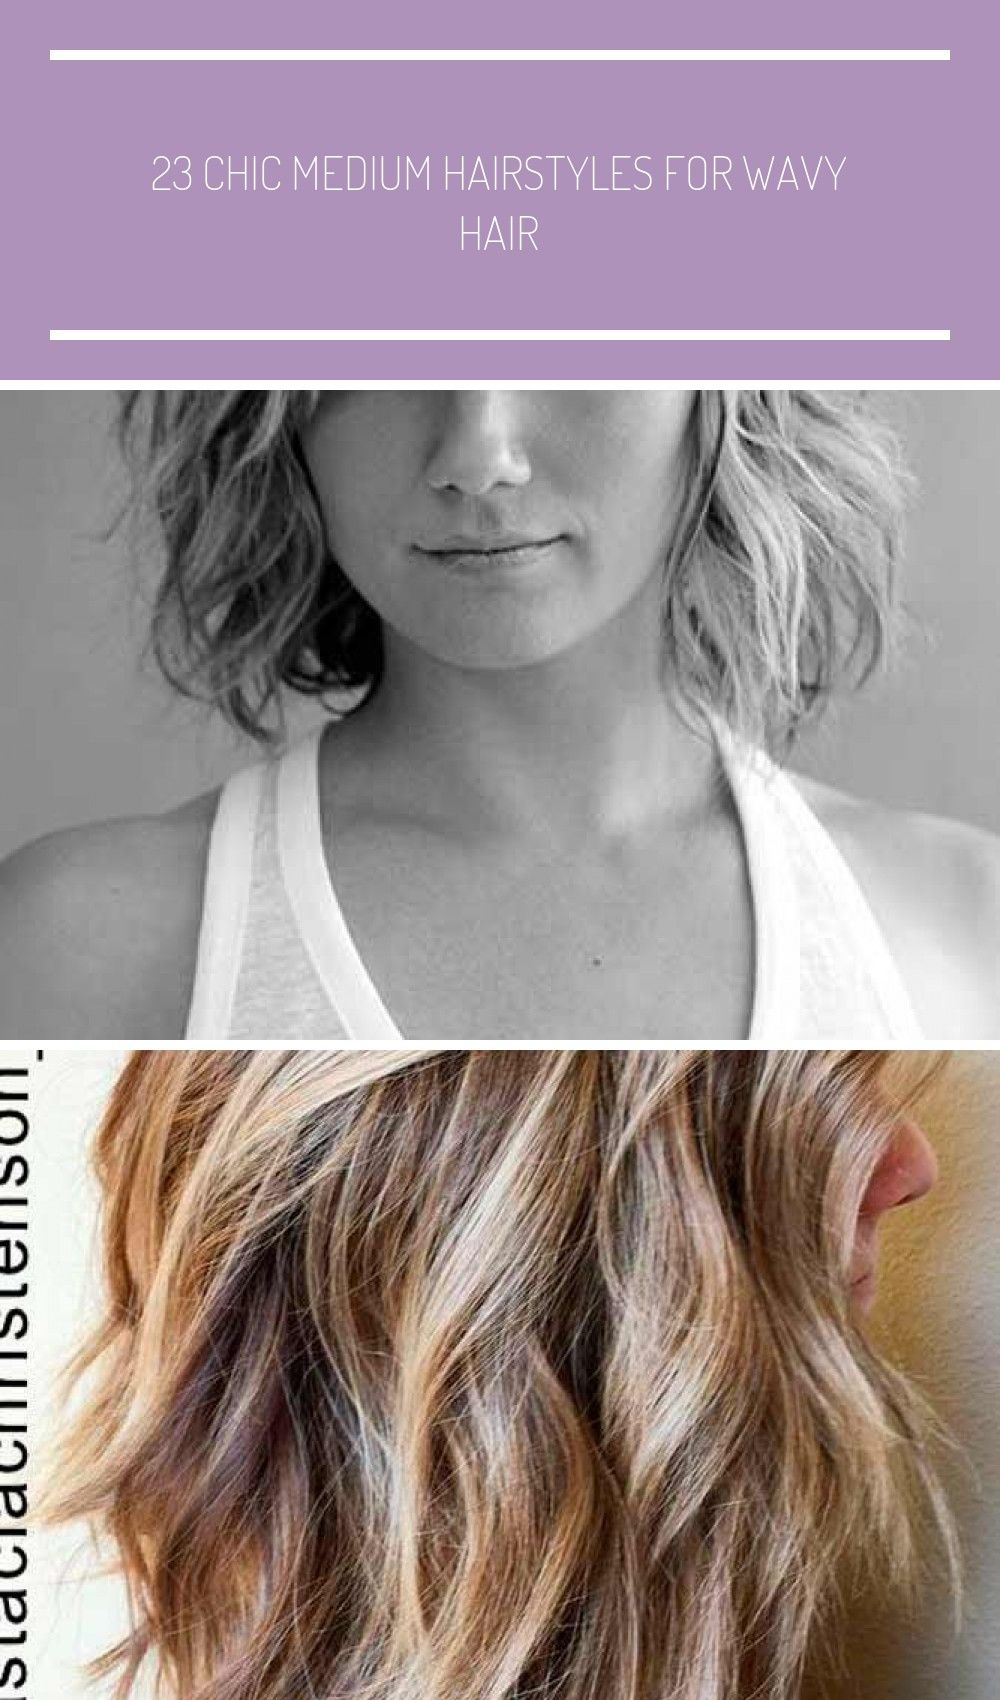 Medium Wavy Hairstyle Summer Haircuts for Women Over 18  18 wavy ...